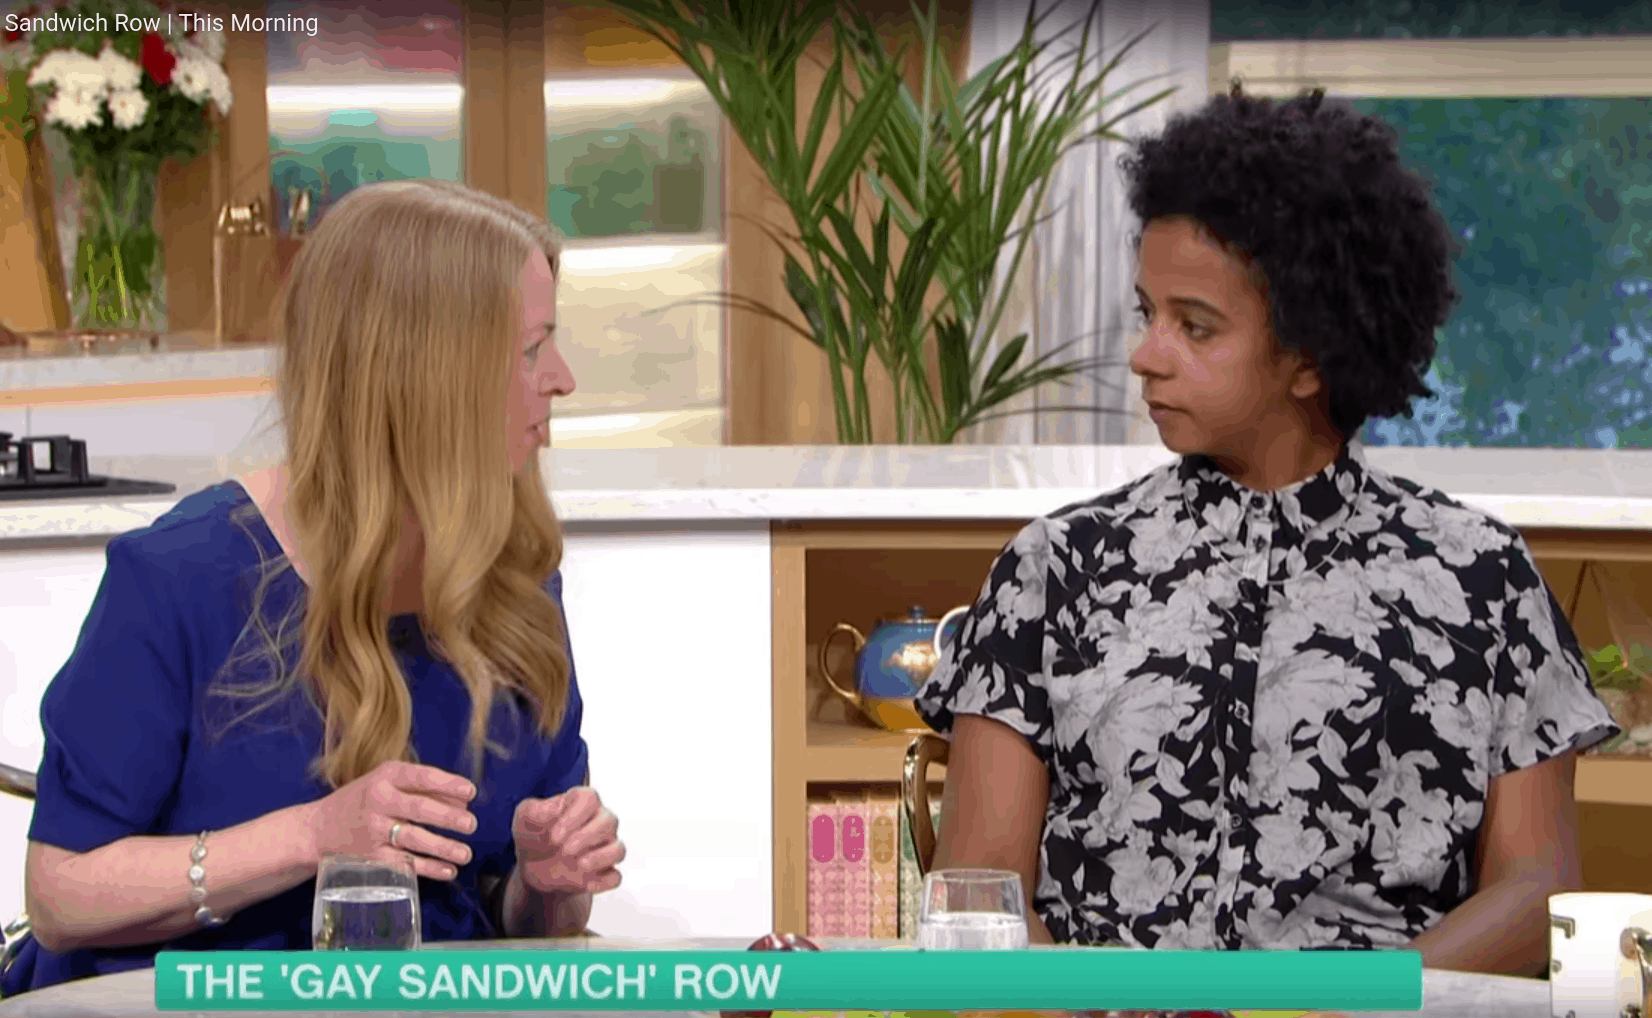 Sonia Pulton and Melissa Thompson discussing LGBT sandwich and cotton ceiling on This Morning